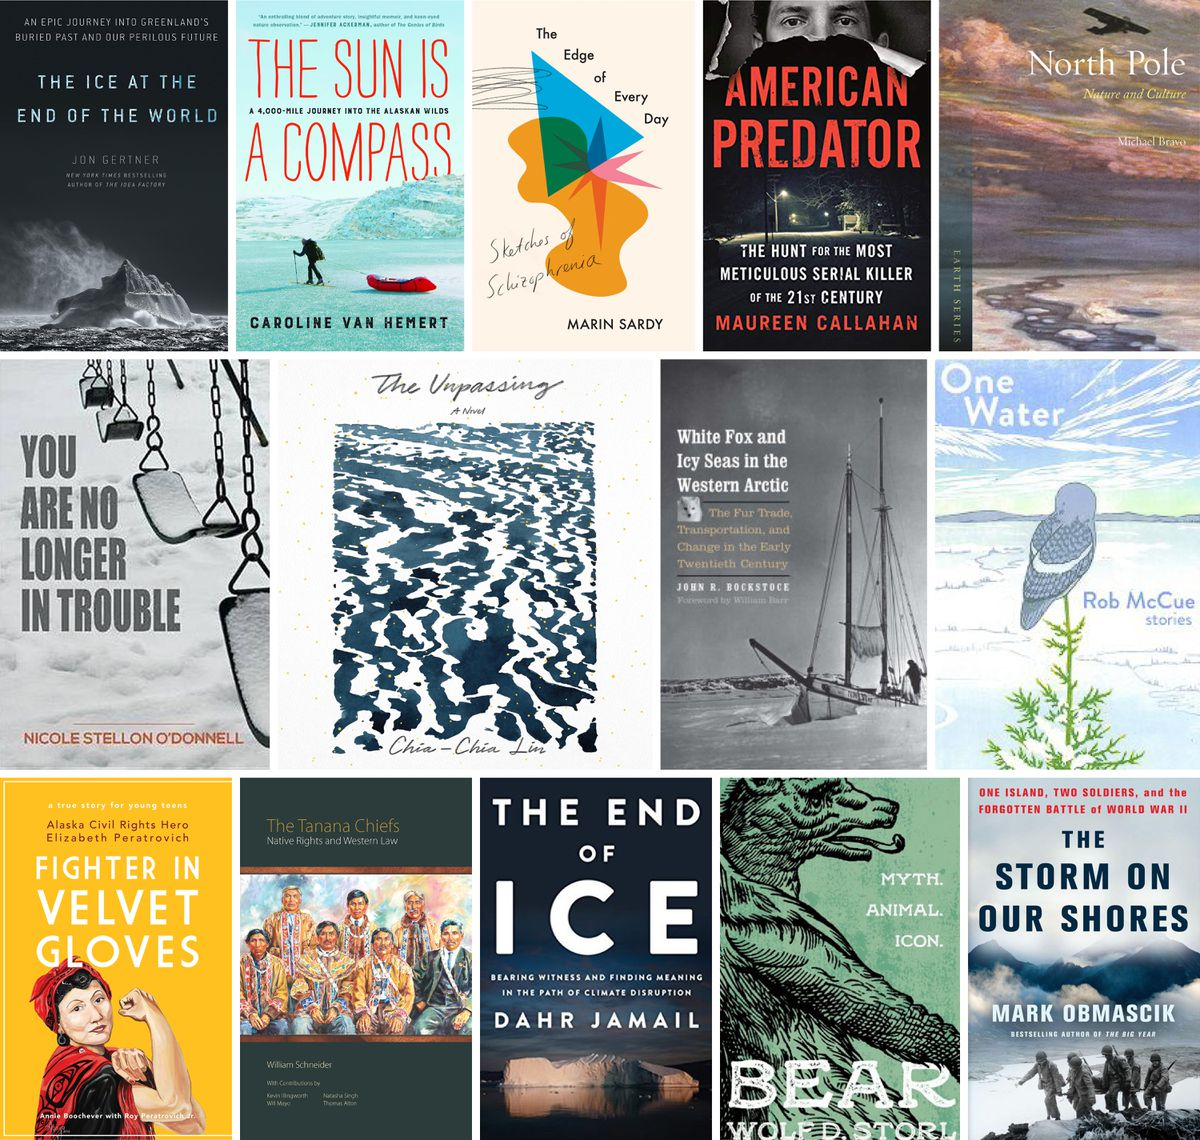 Our book reviewers' top reads of 2019.